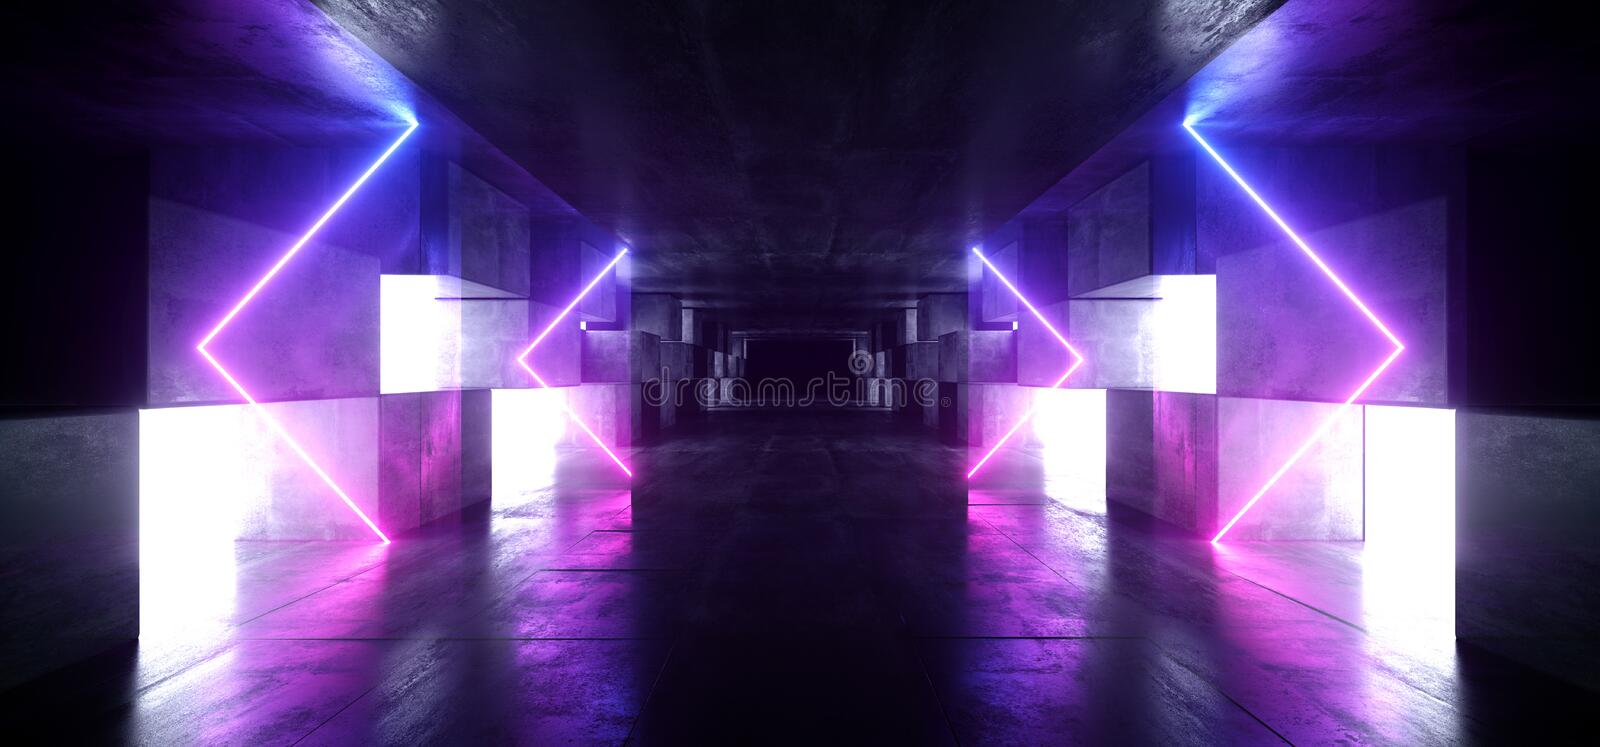 Neon Lights Arrows Graphic Glowing Purple Blue Vibrant Virtual Sci Fi Futuristic Tunnel Studio Stage Construction Garage Podium. Spaceship Night Dark Concrete vector illustration